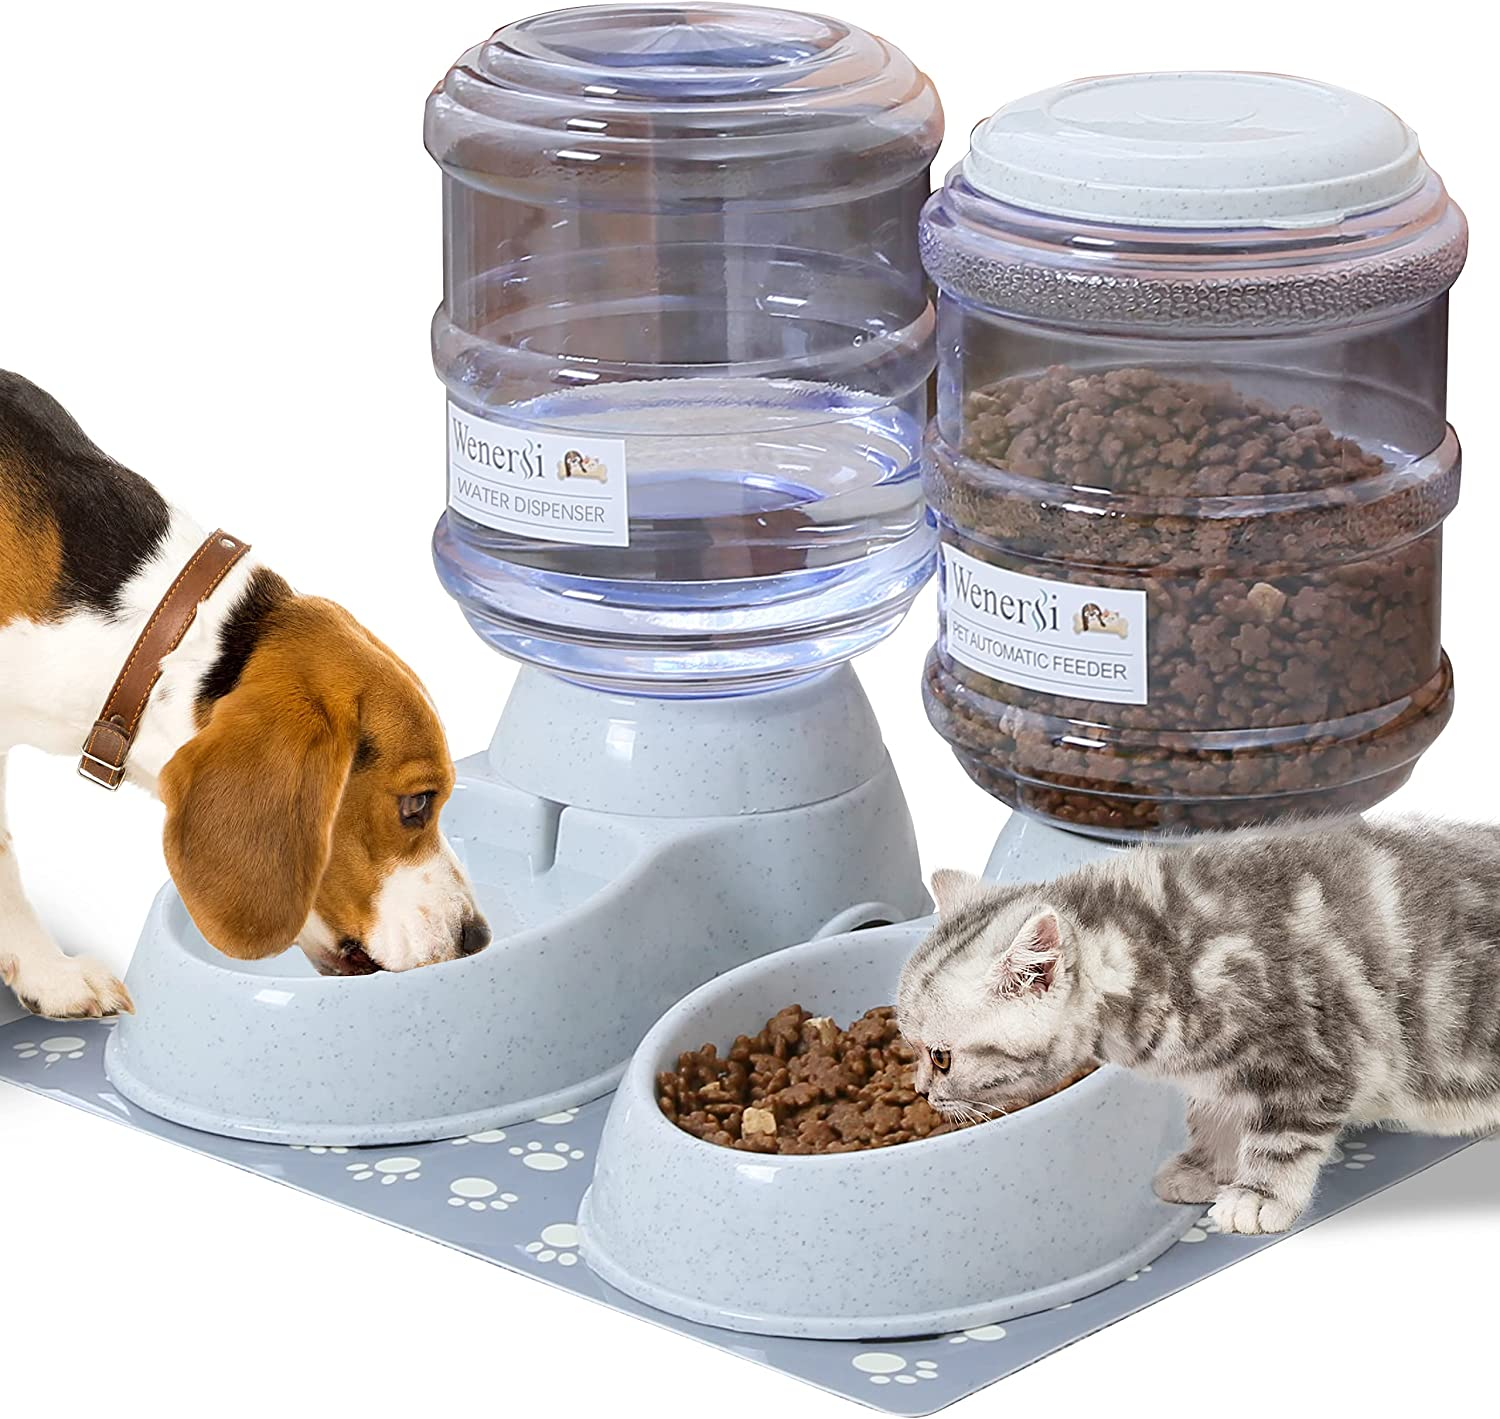 WENERSI Automatic Cat Feeder and Water Dispenser Set with Pet Food Mat,Dog Water Bowl Dispenser and Automatic Dog Feeder,Big Capacity Cat Food Dispenser 1 Gallon2